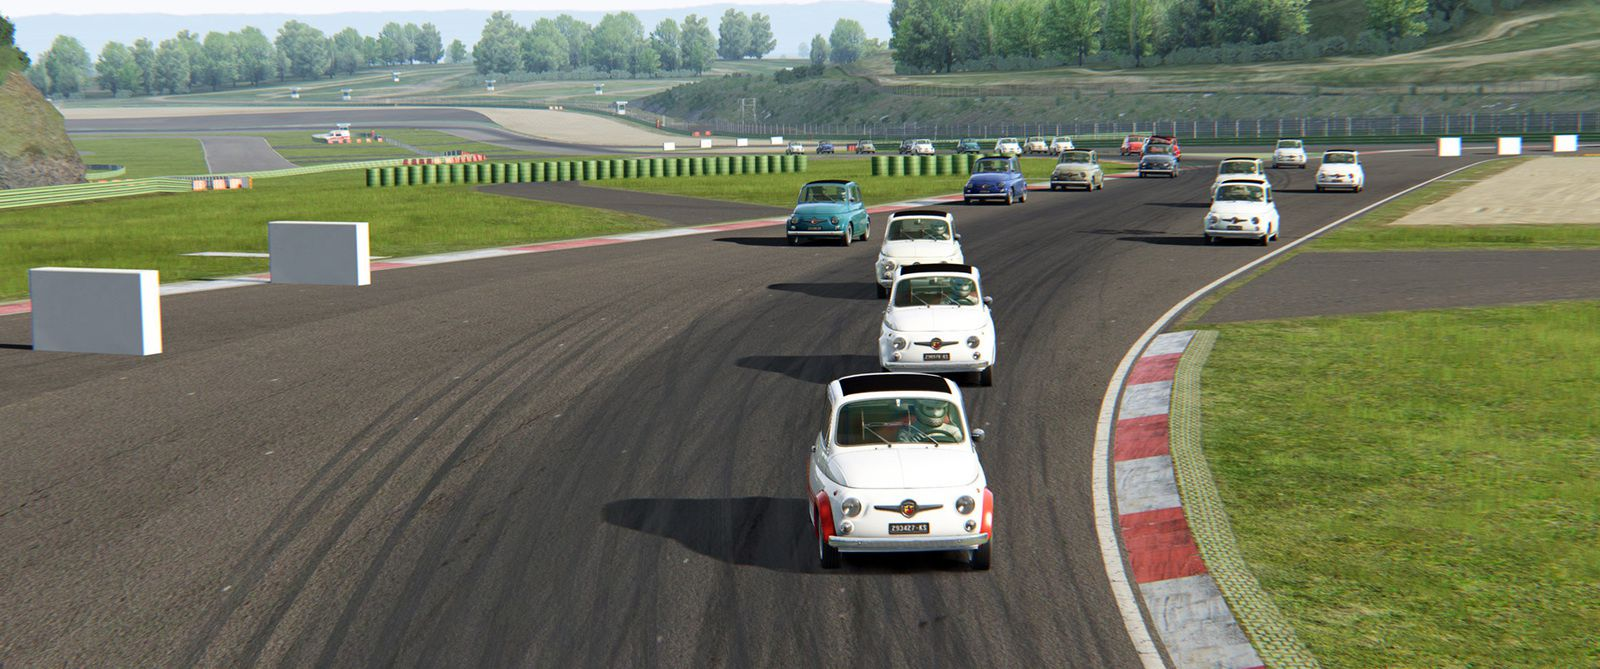 Assetto Corsa - La version 1.5 se montre en images.